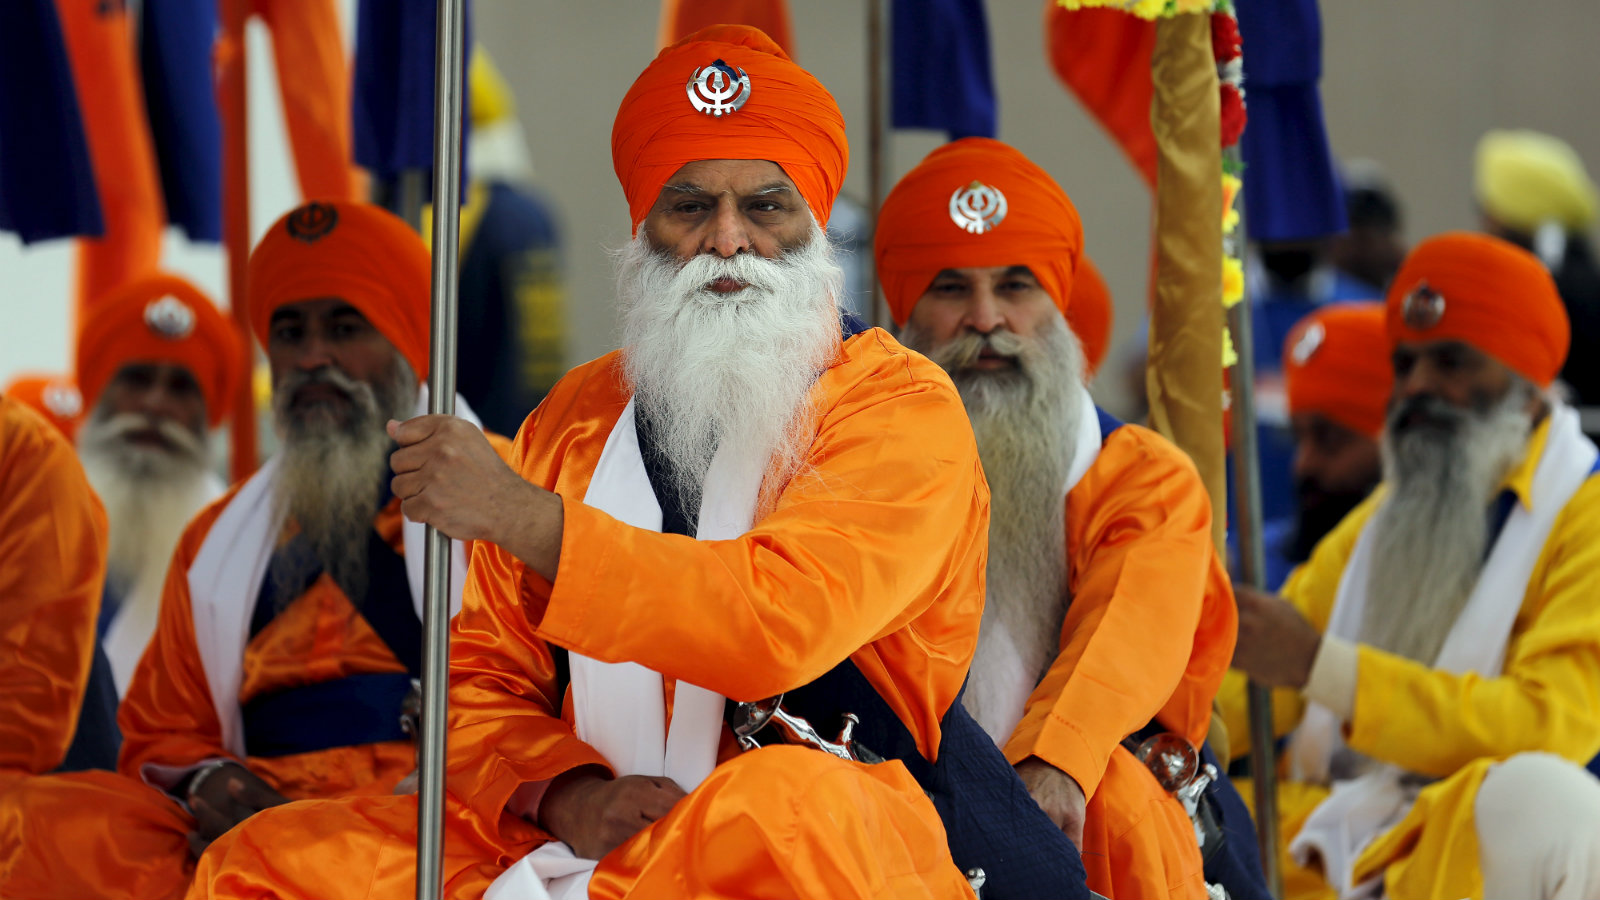 Sikh marchers sit after a Khalsa Day parade in Toronto, Canada, in 2016.